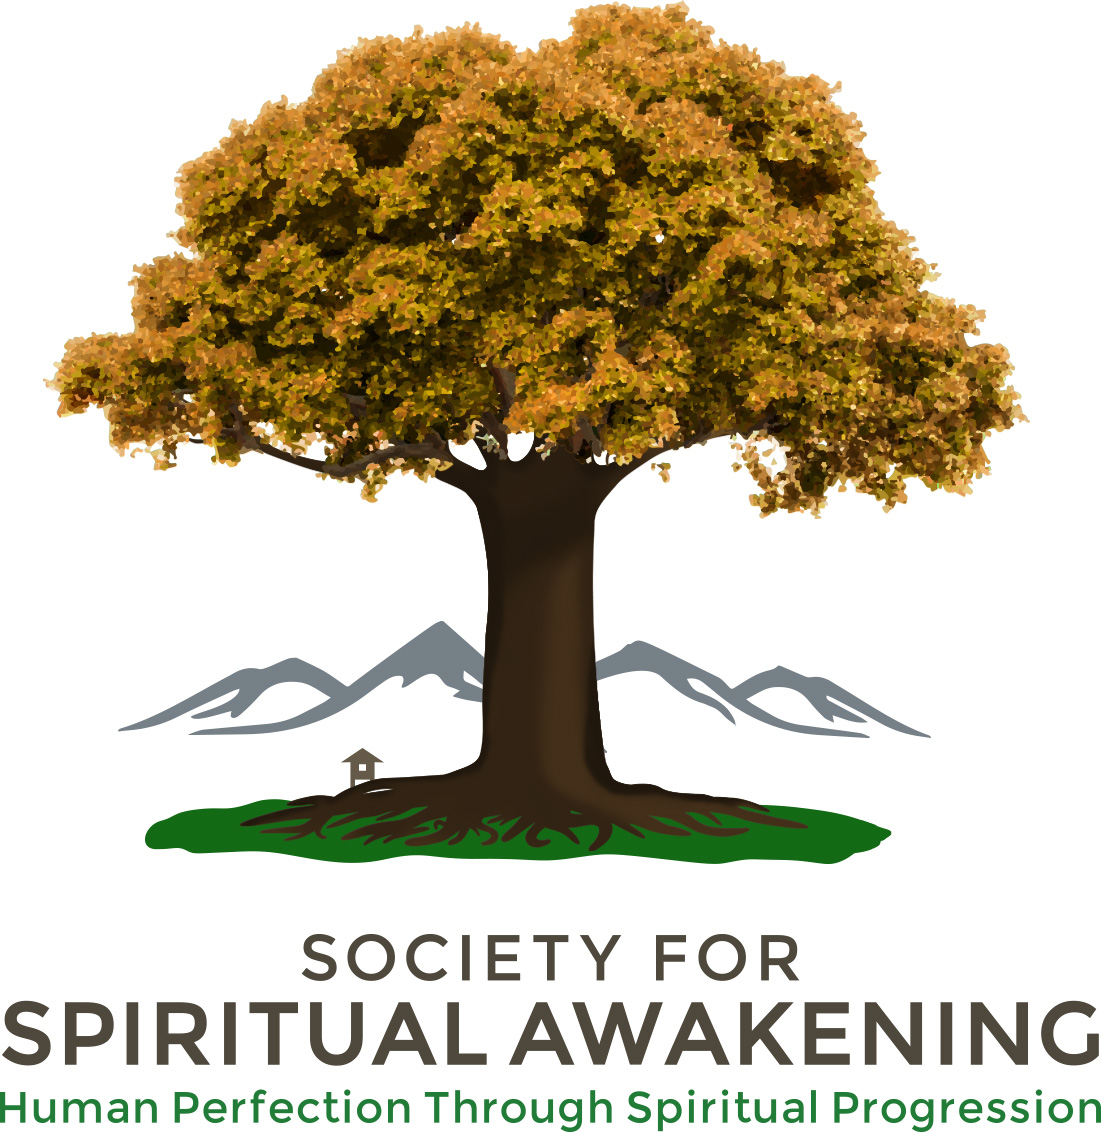 - I pursued spiritual development and meditation with the group that would eventually become the non-profit organization, Society for Spiritual Awakening.